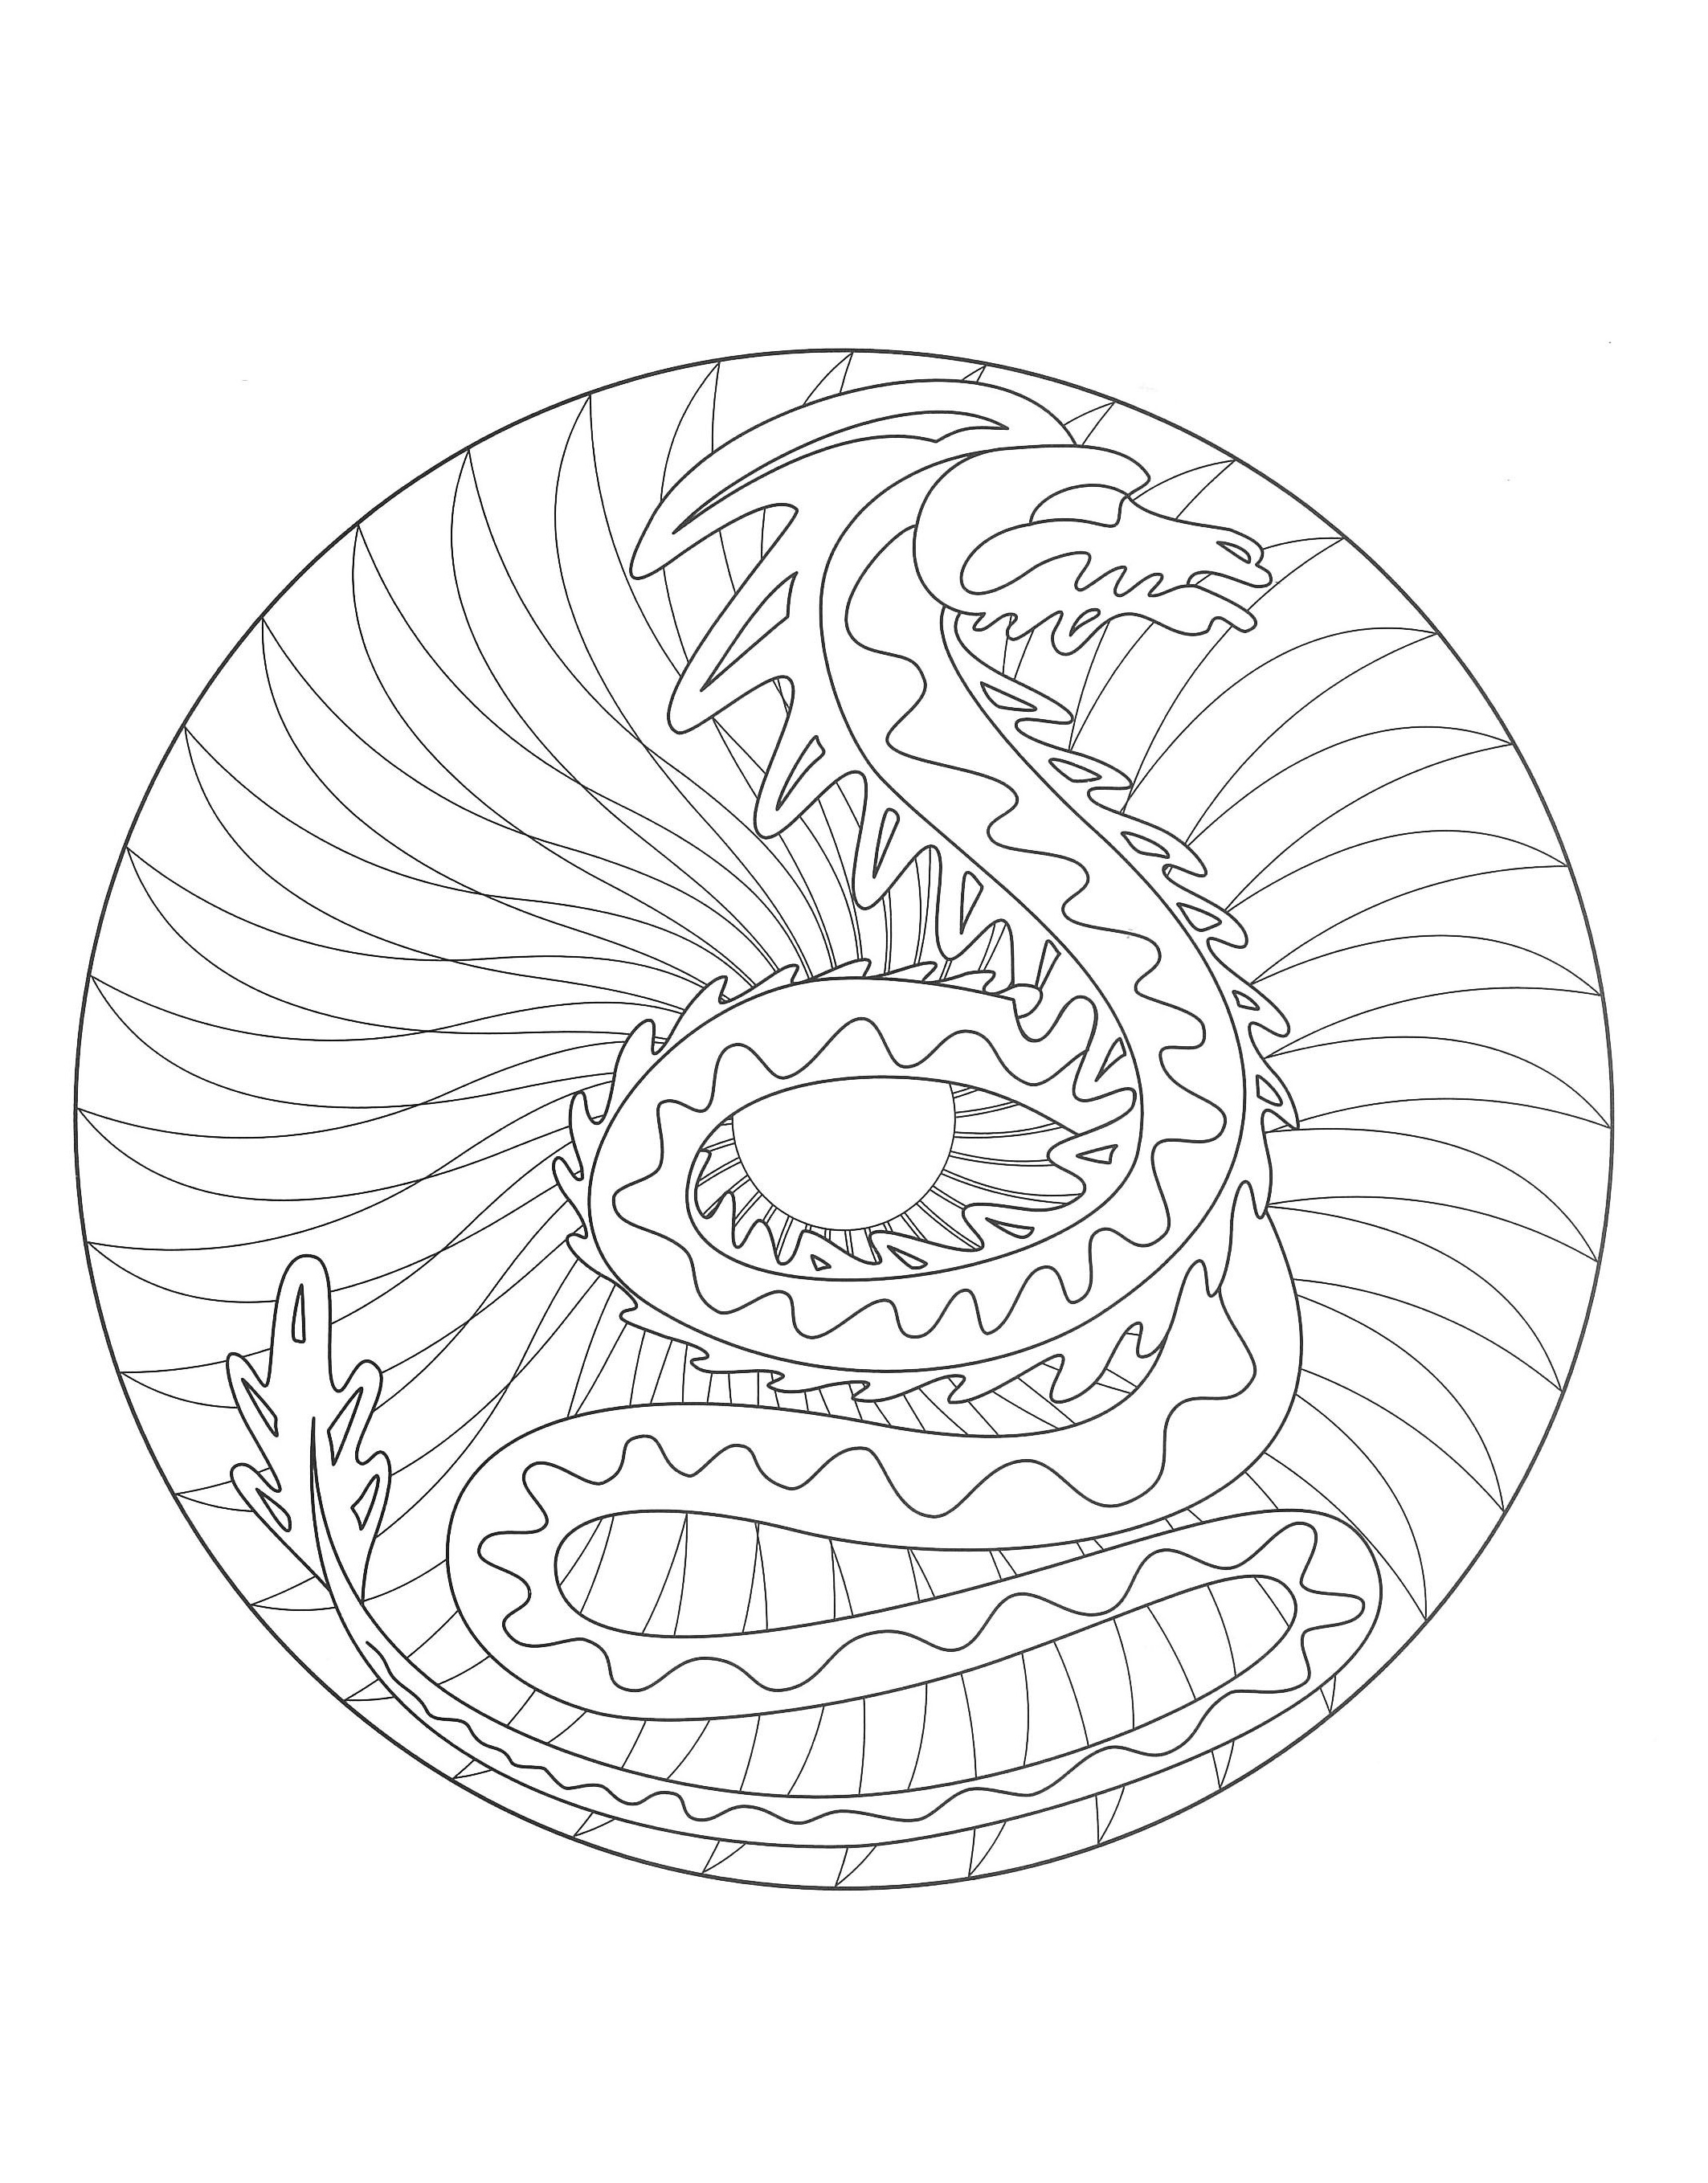 dragon yin yang coloring pages malvorlagen yin yang meaning zeichnen und färben dragon coloring pages yin yang